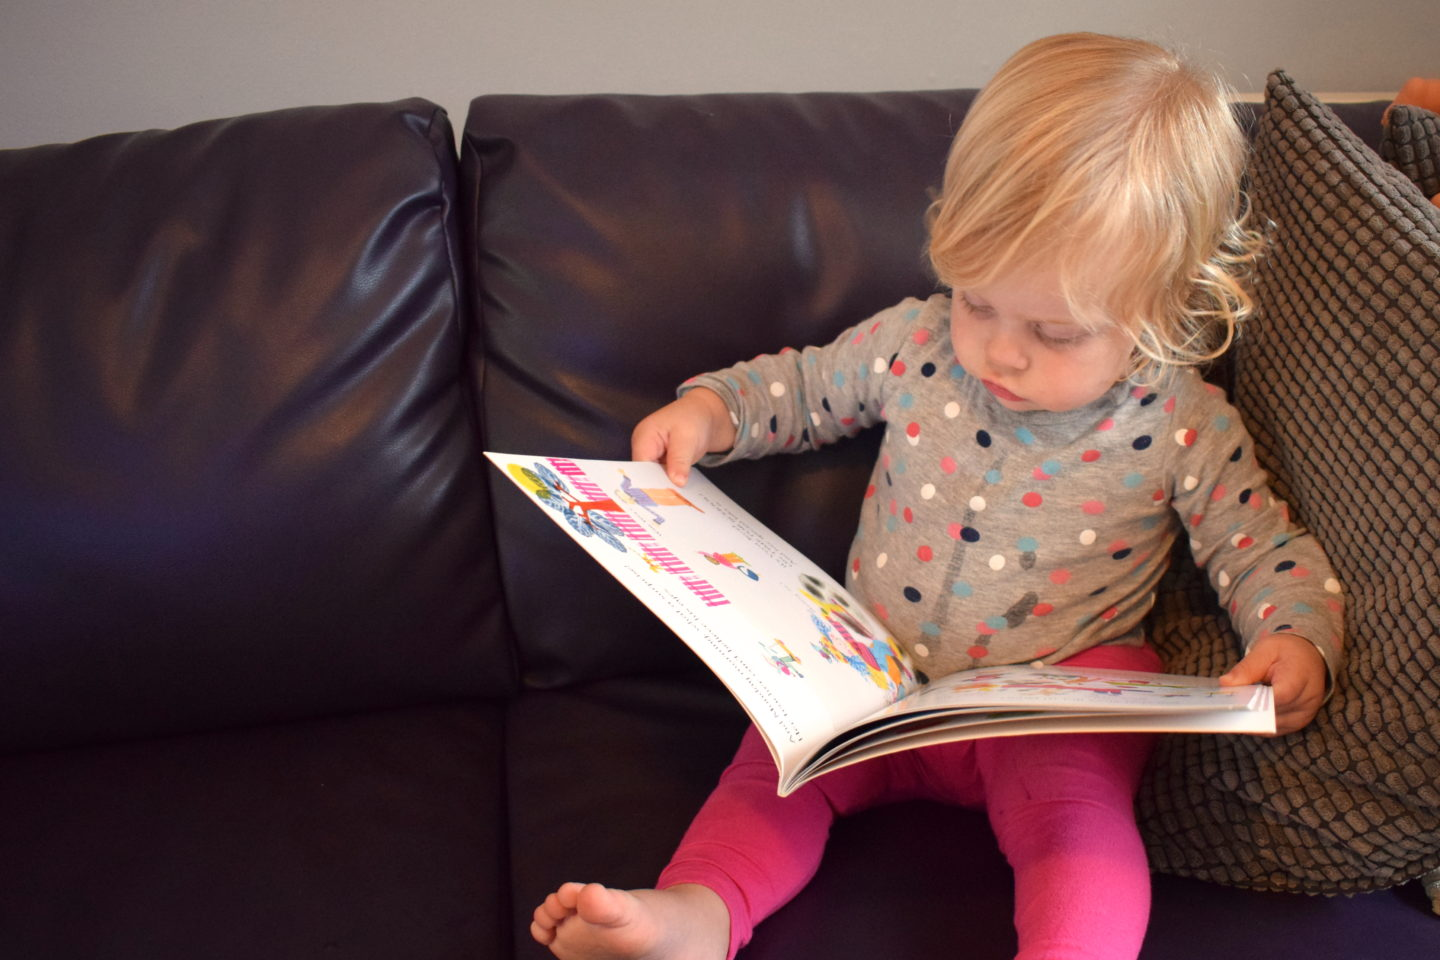 18 month old girl reading a book on the sofa - time to read